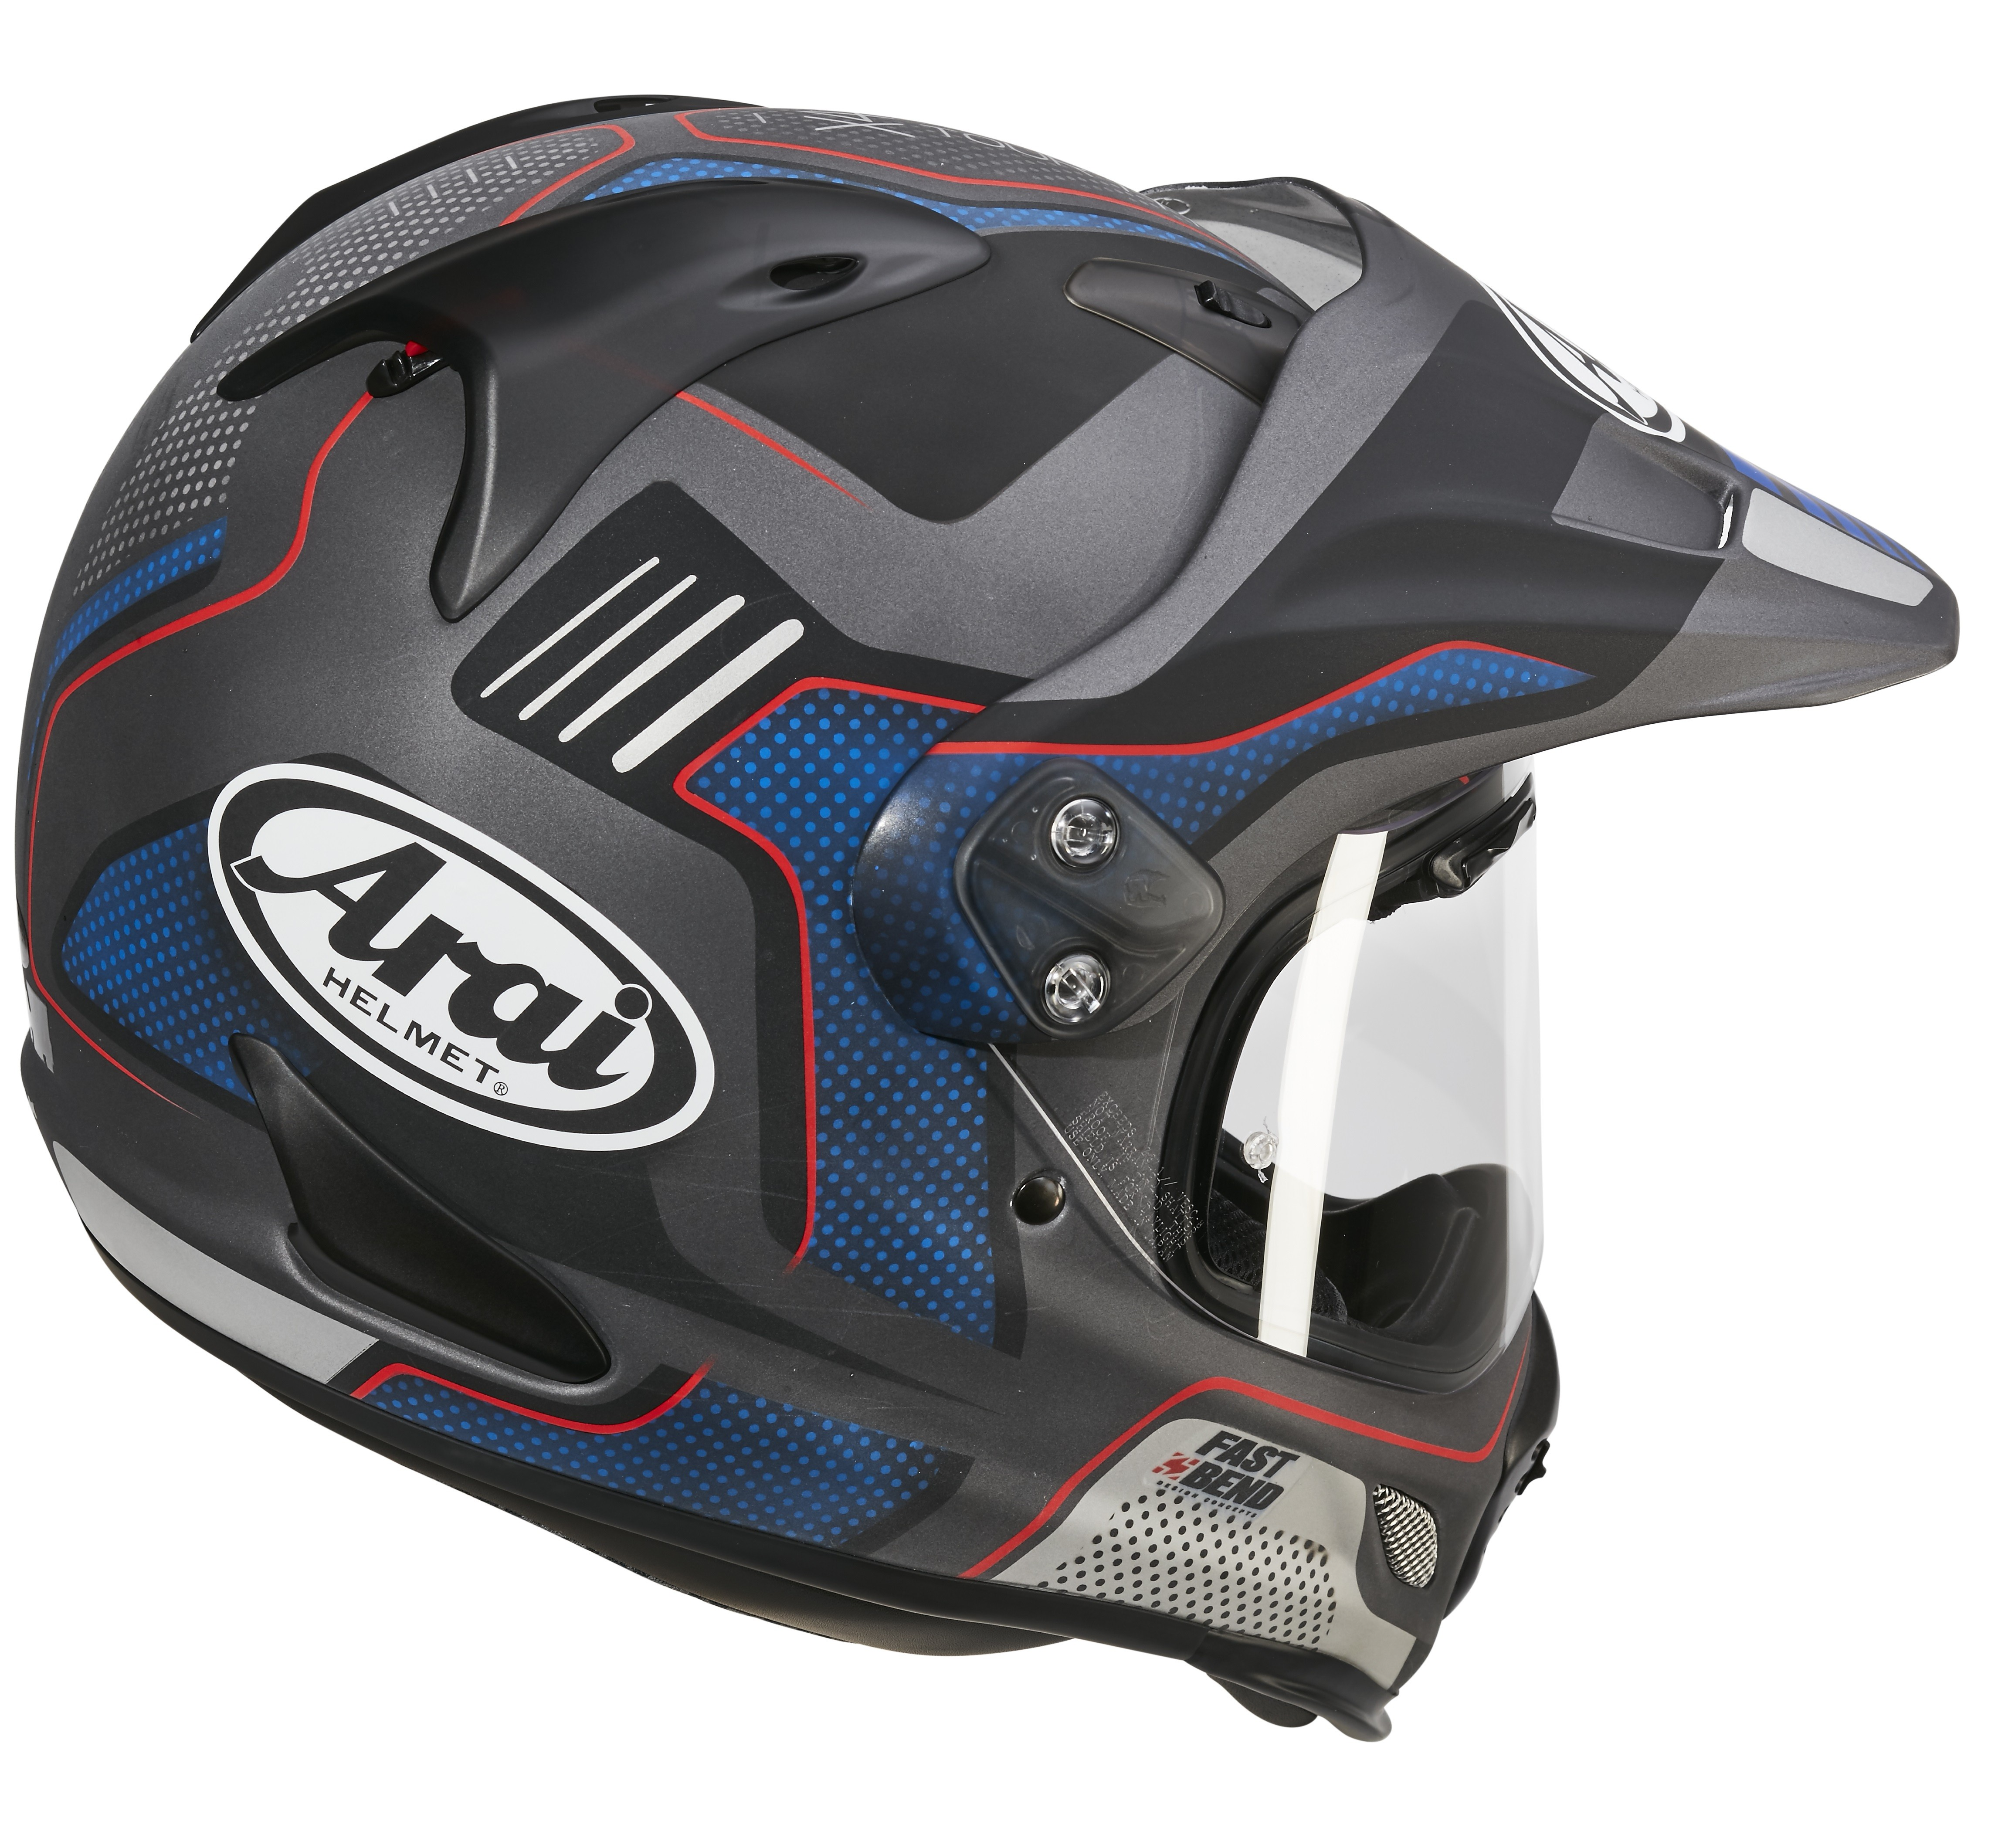 arai tour x4 vision adventure motorcycle helmets mx helmets. Black Bedroom Furniture Sets. Home Design Ideas